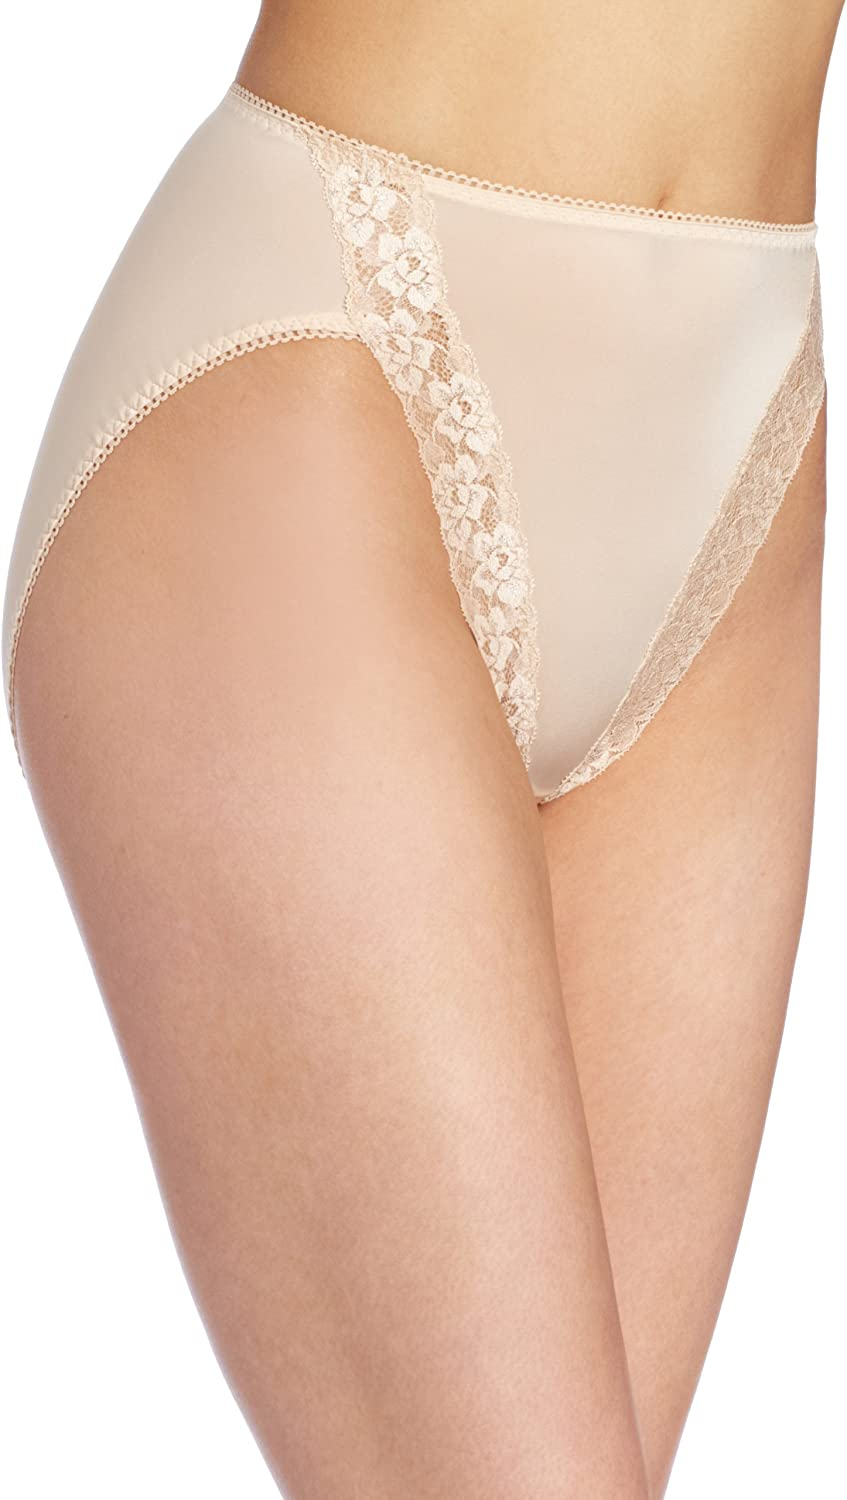 Wacoal Desire Lace Trimmed Briefs UK Size Small g 10  116005 Chamoix